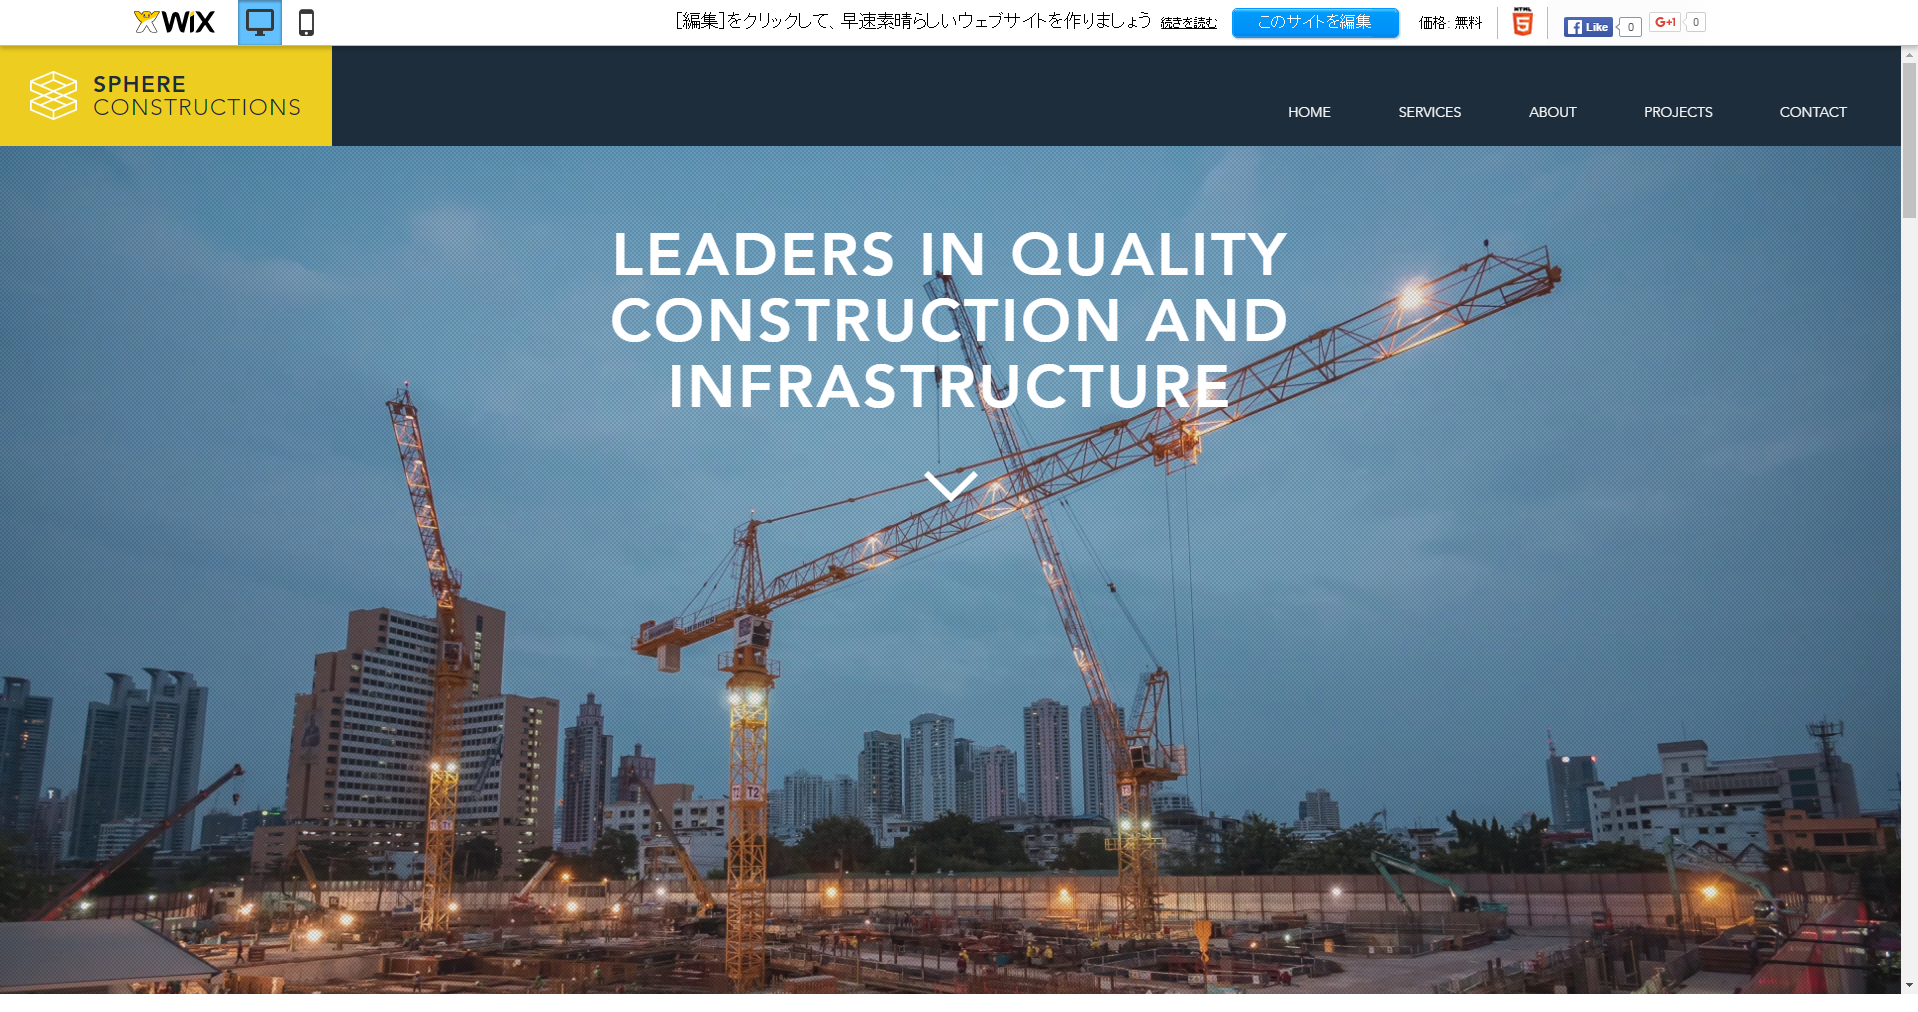 FireShot Capture 21 - Construction Company テンプレ_ - http___ja.wix.com_website-template_view_html_1734